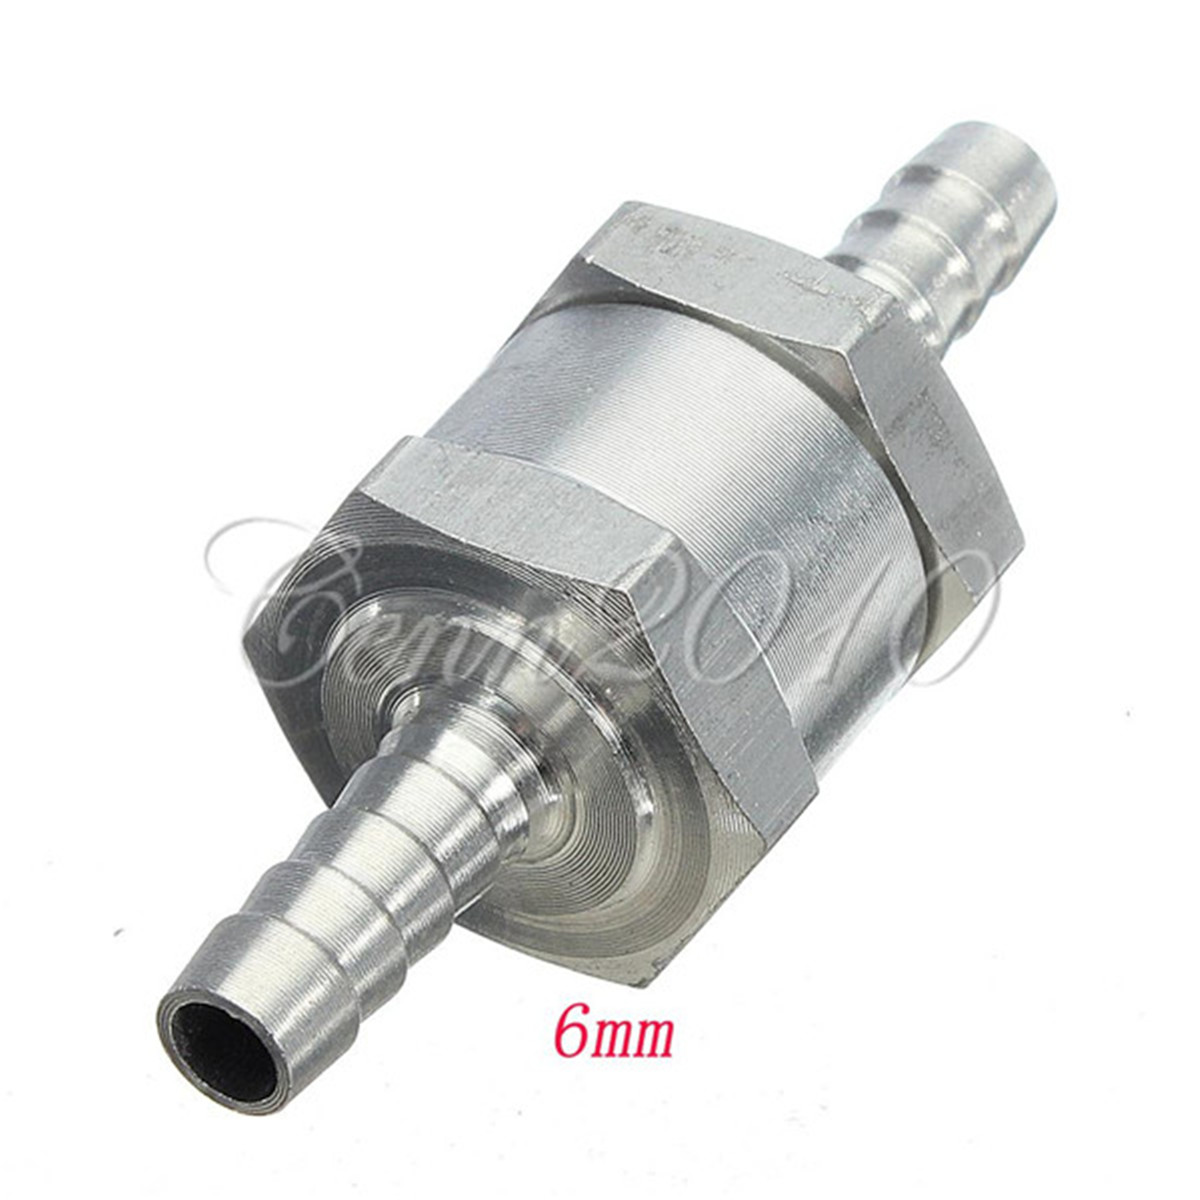 6mm Aluminium Chrome Alloy Fuel Non Return Check Valve One Way Petrol For Diesel